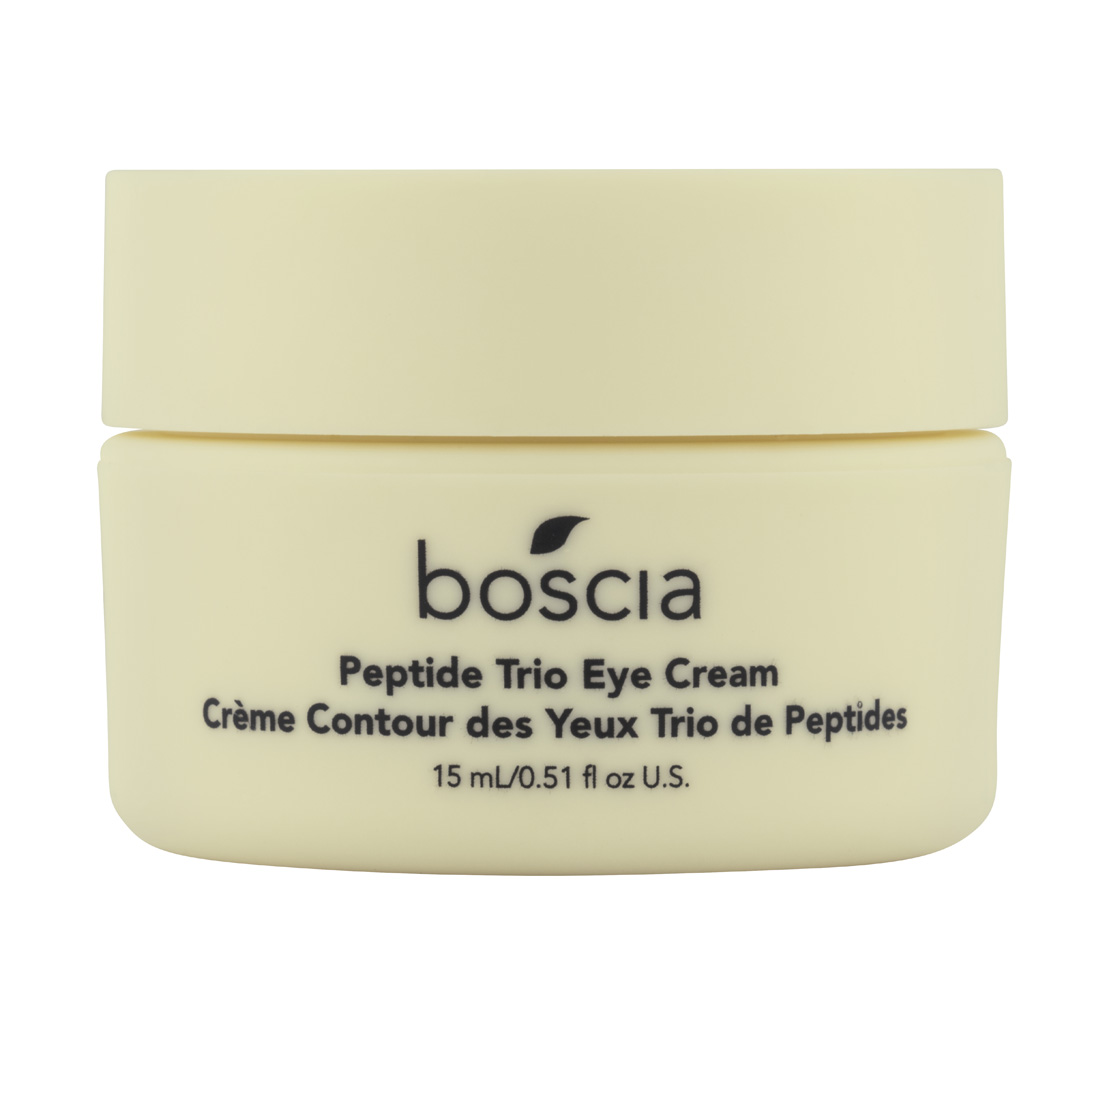 Peptide Trio Eye Cream